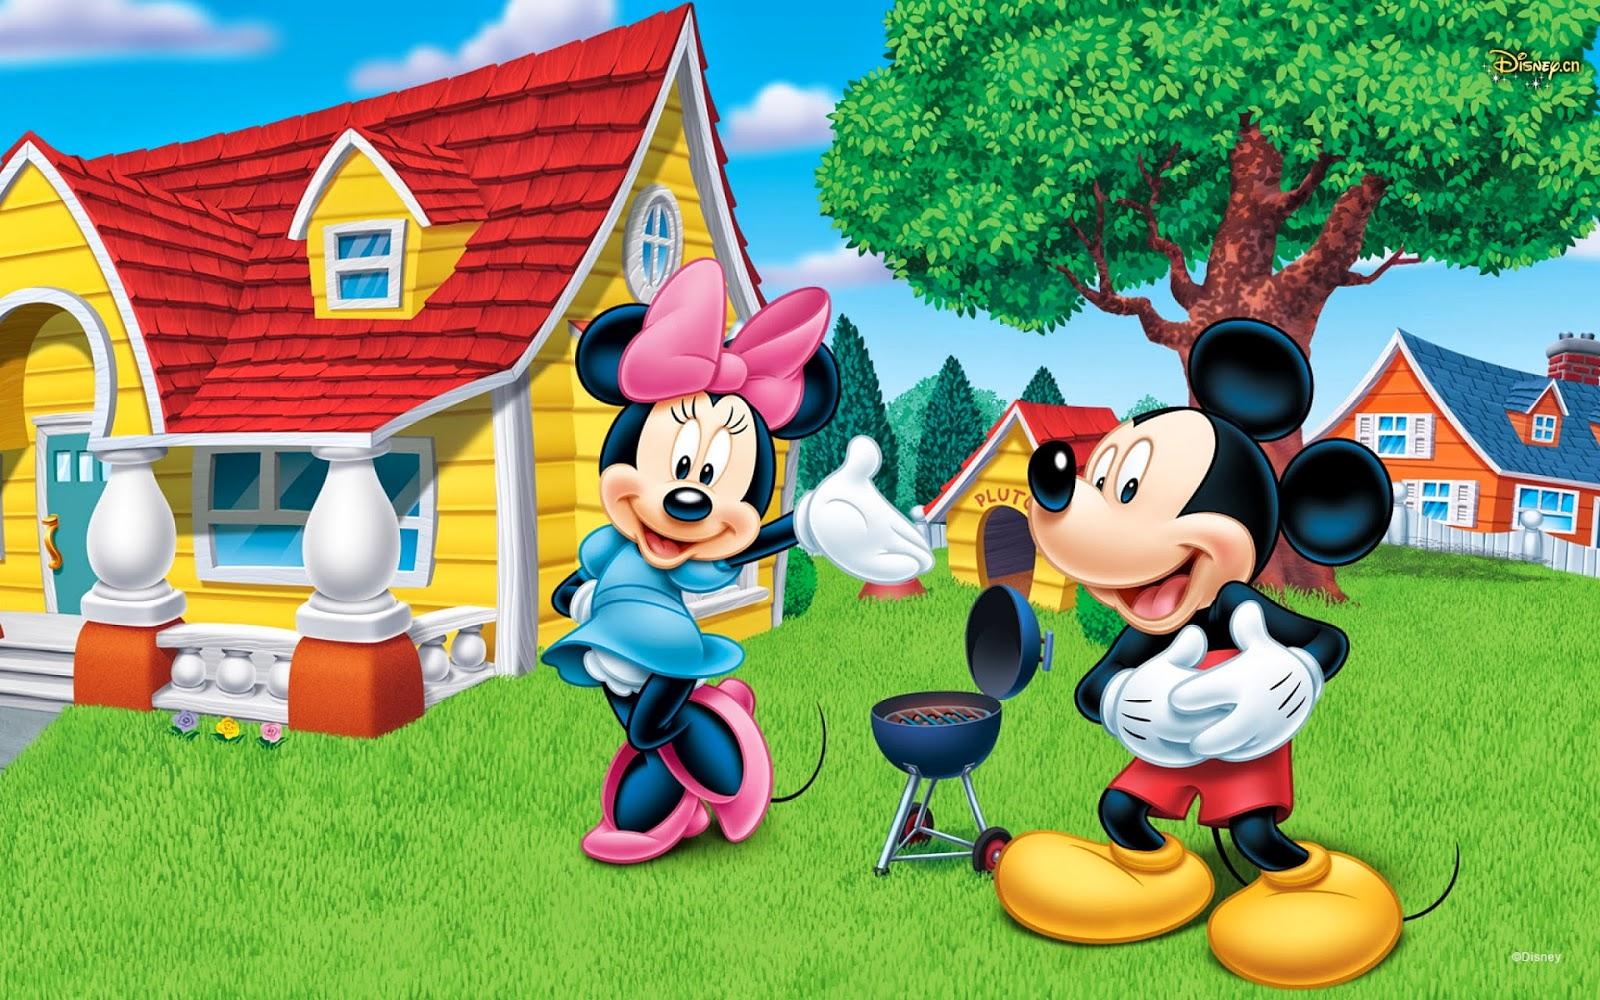 Disney Character Wallpapers -  Mickey and Minnie Mouse